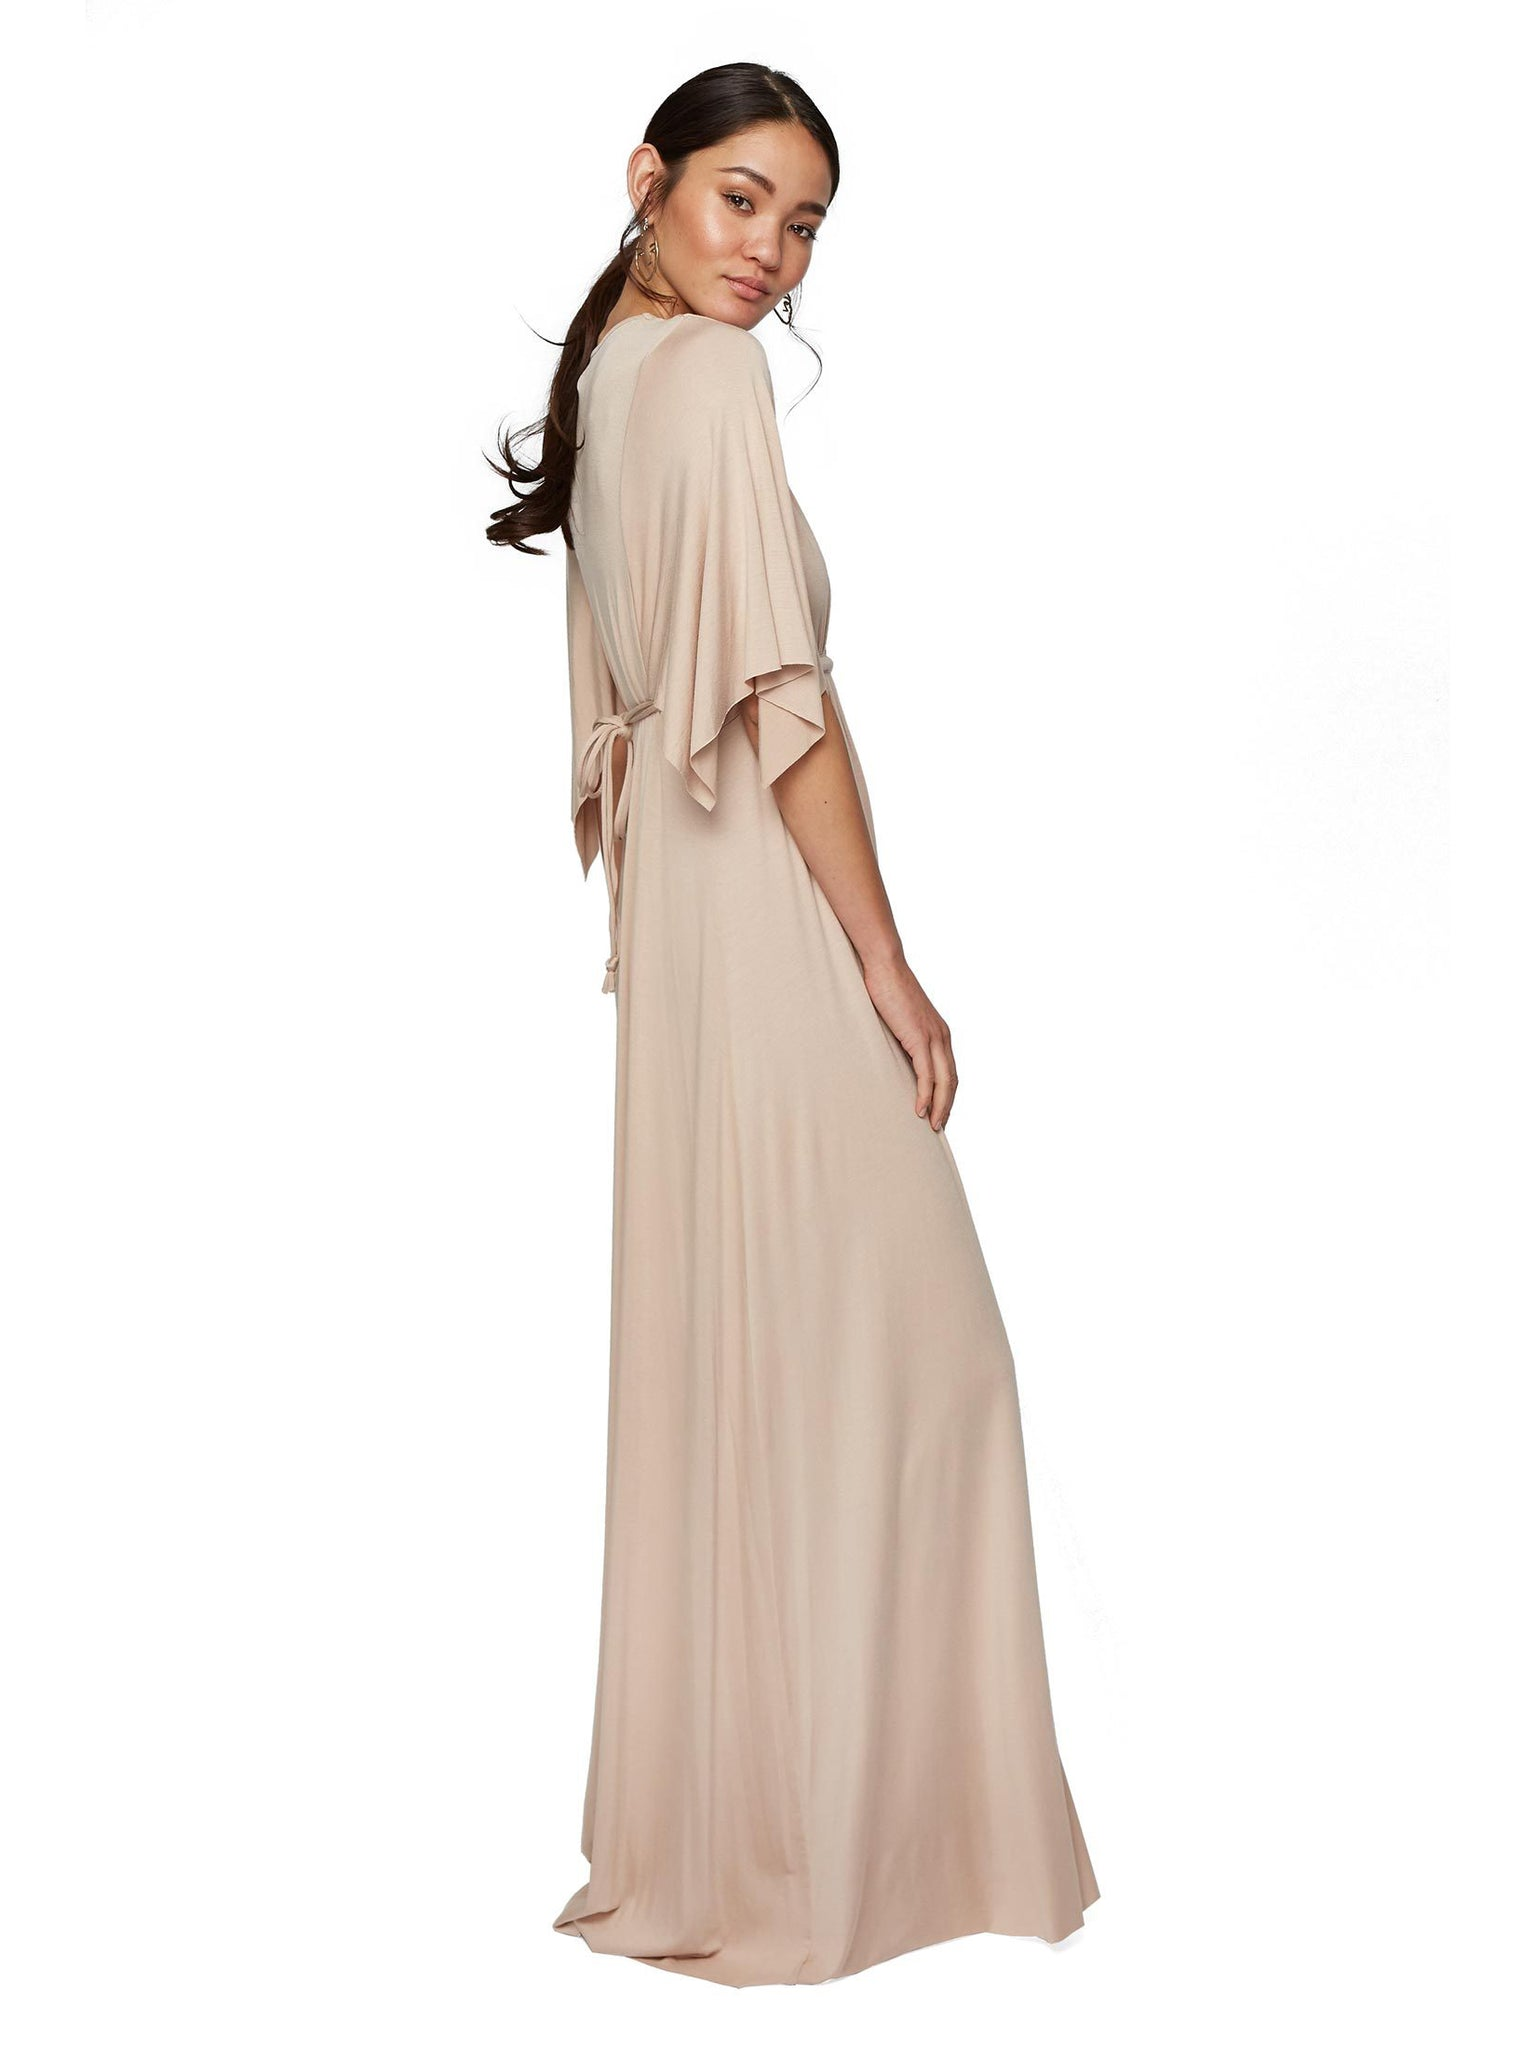 Rachel Pally Maternity Long Caftan Maxi Dress - Bamboo Cream | TILDEN